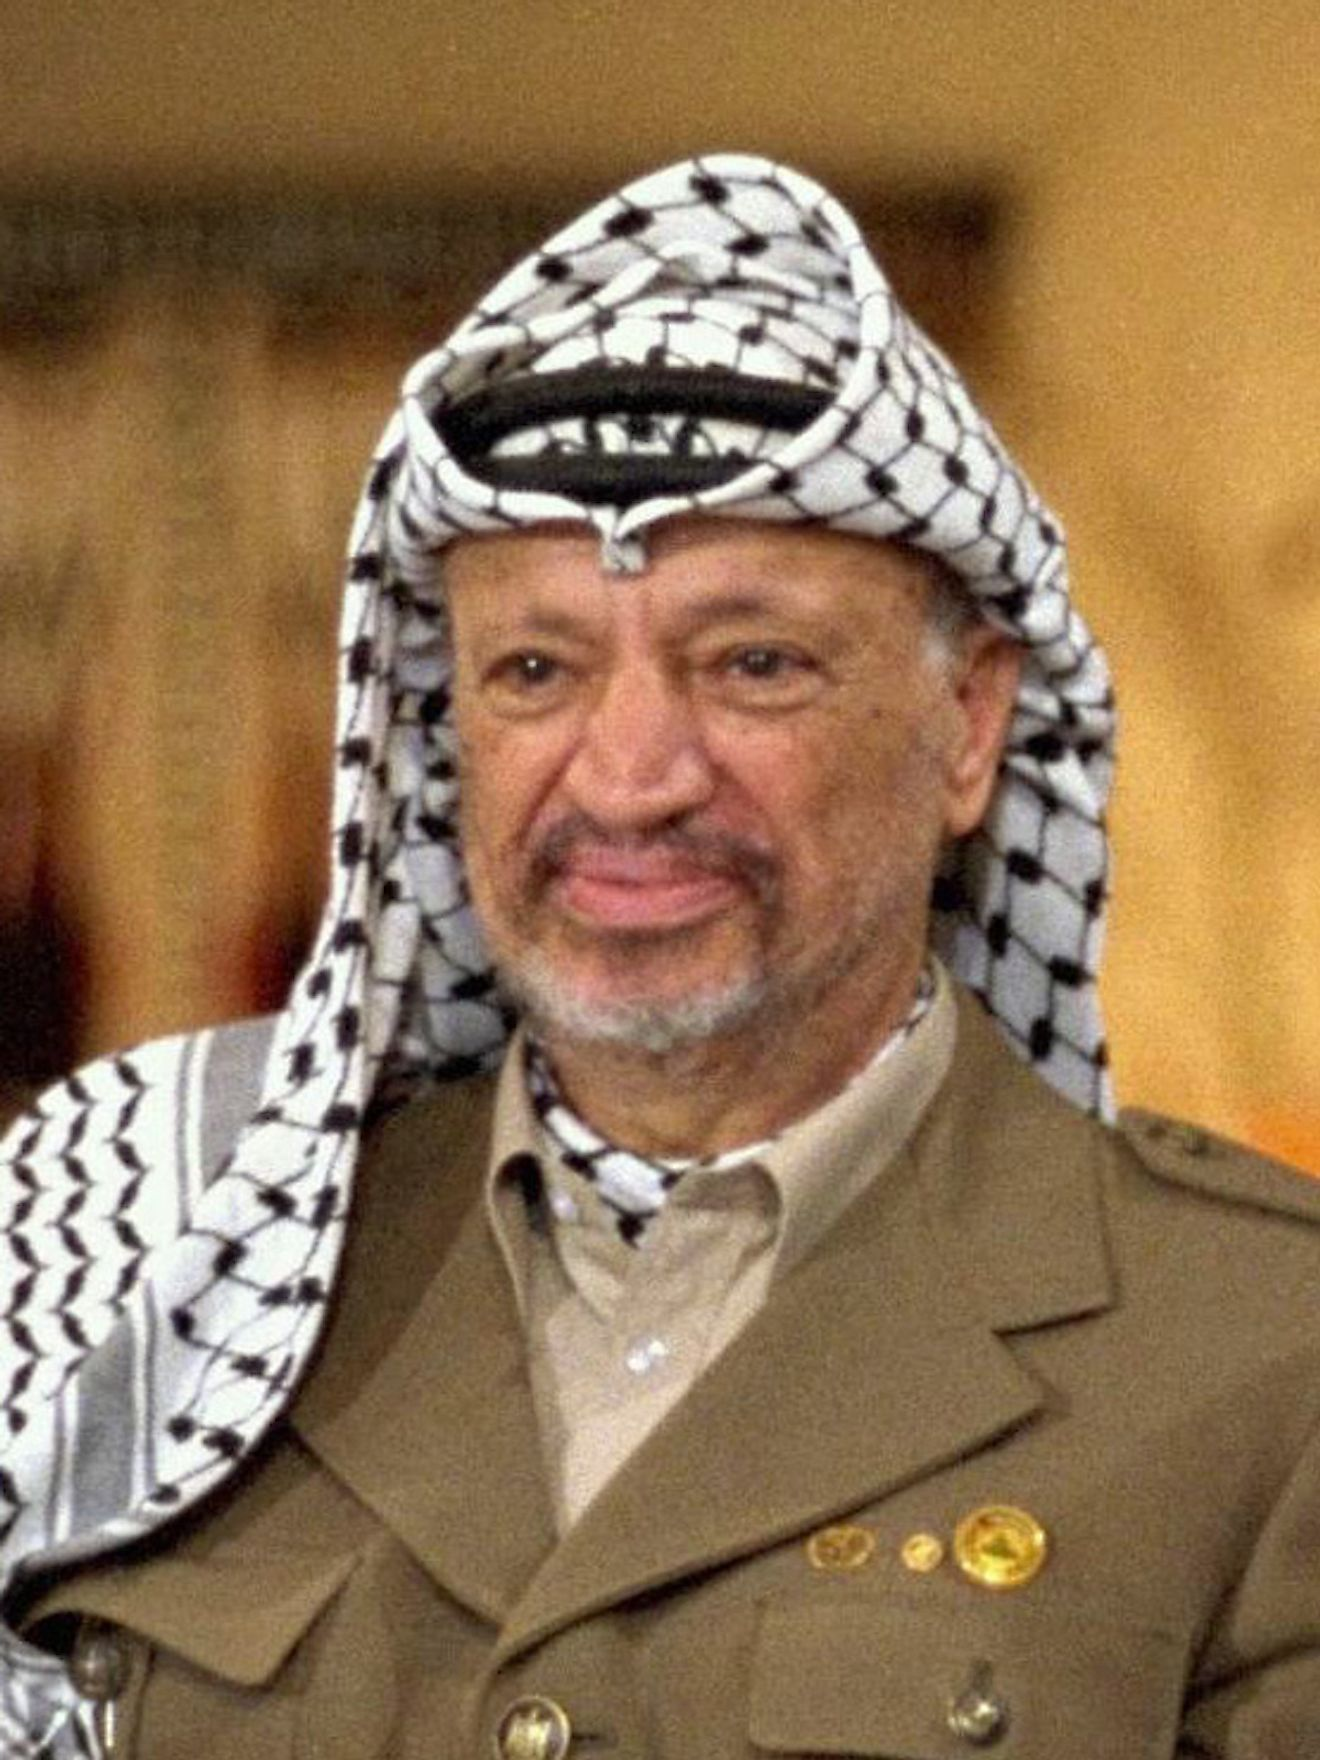 Yasser Arafat. Image credit: Government Press Office (Israel)/Wikimedia.org